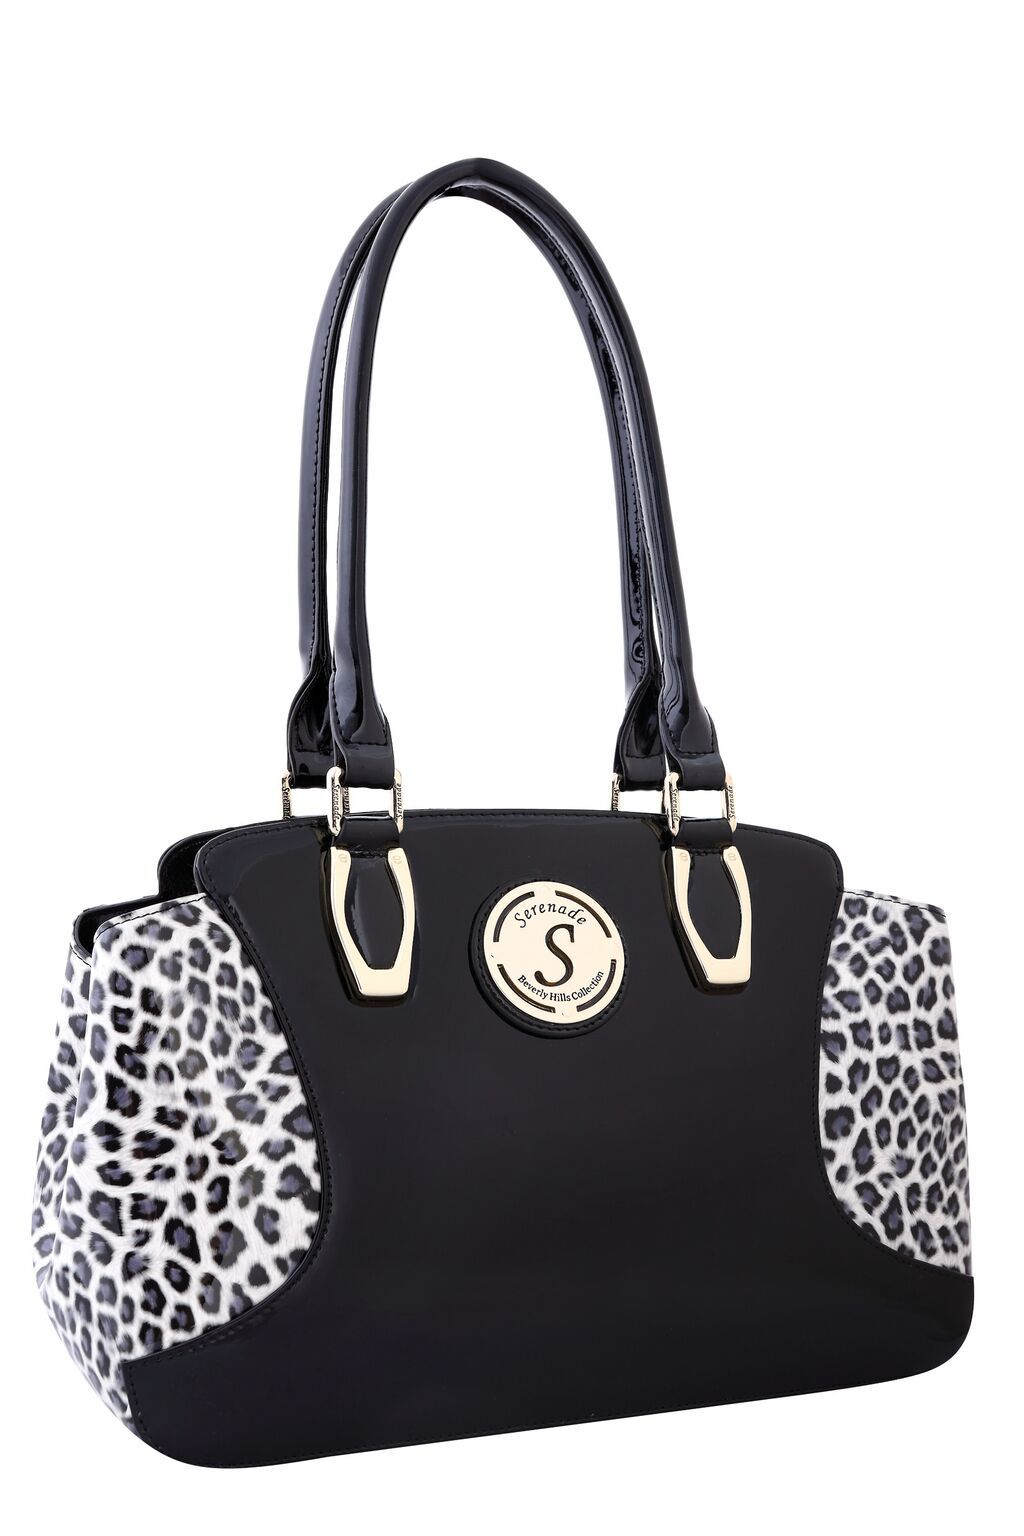 Serenade Panthera Snow Leopard On Now Maisyandmabel Au One Bag